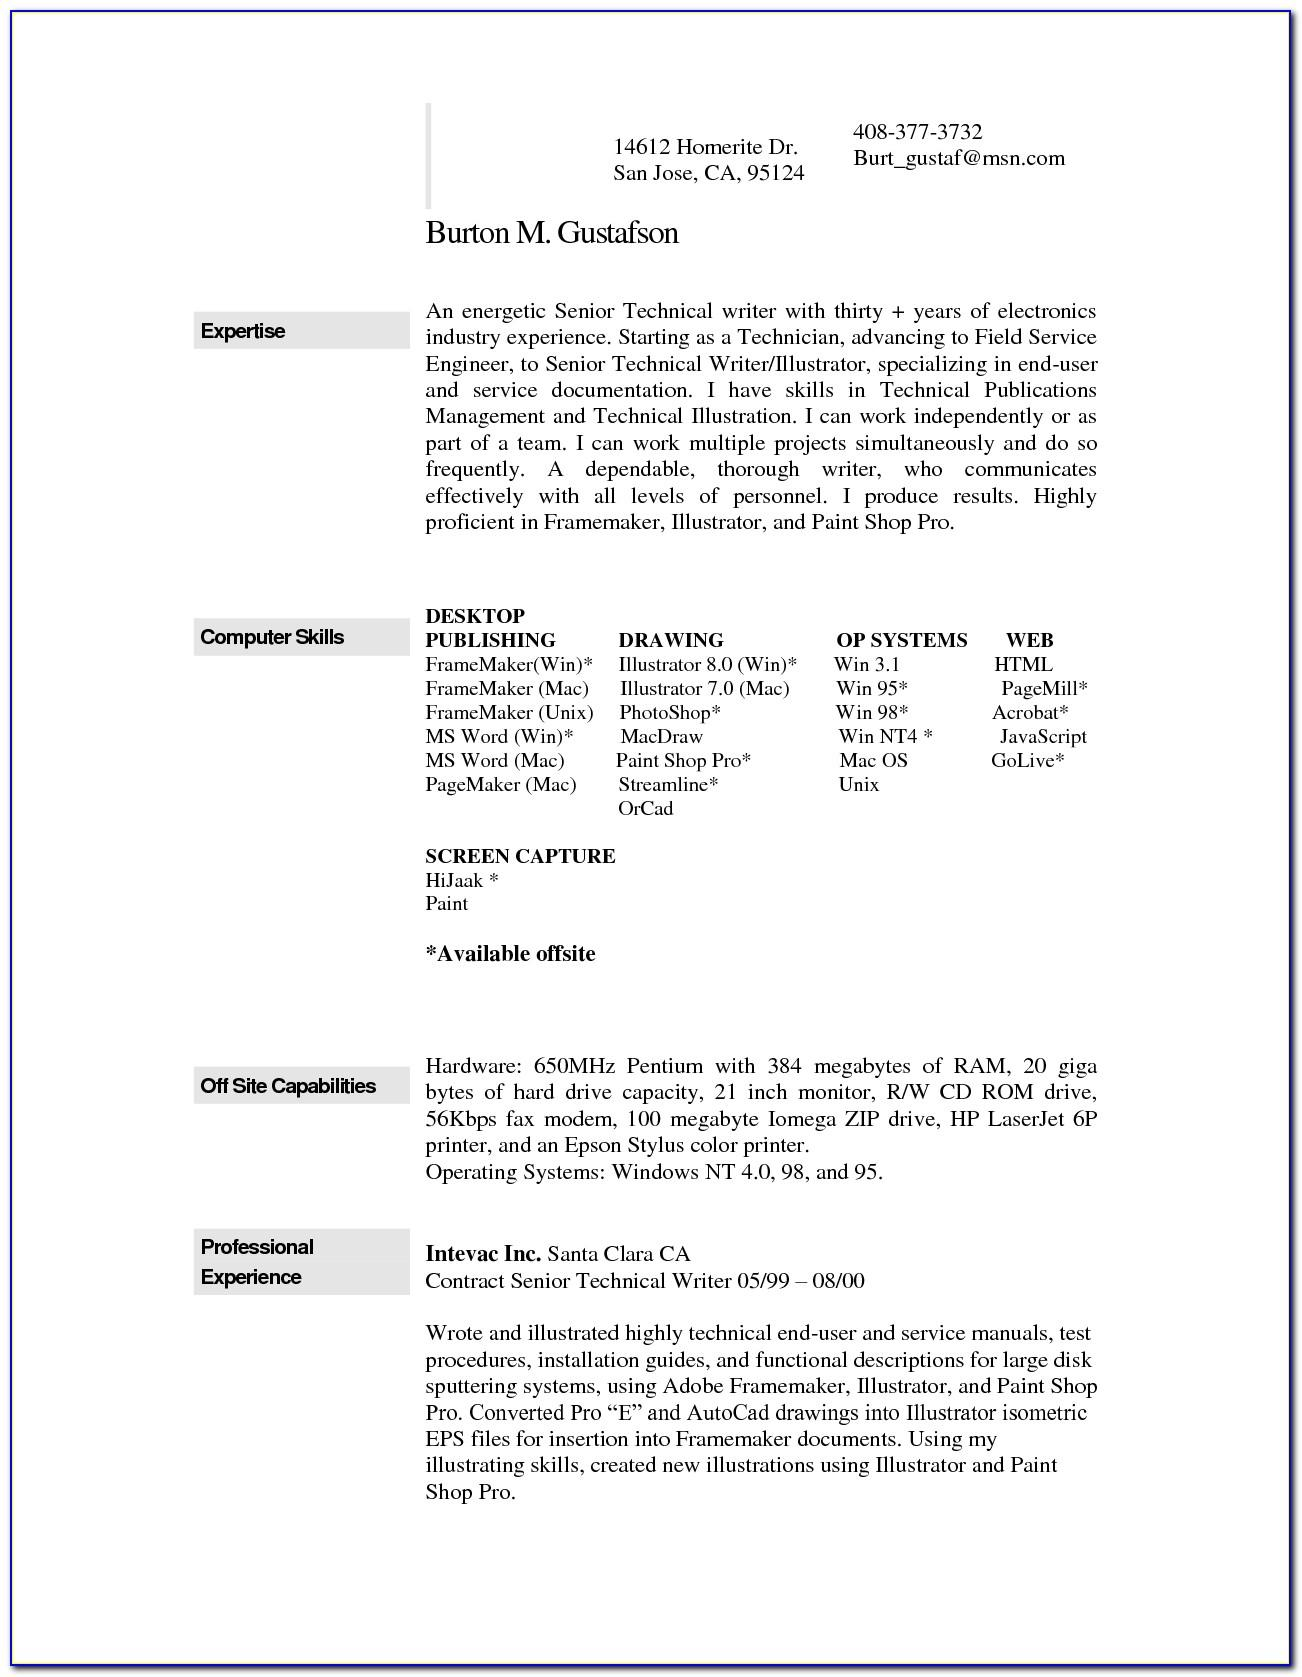 Resume Format Ms Word File Download